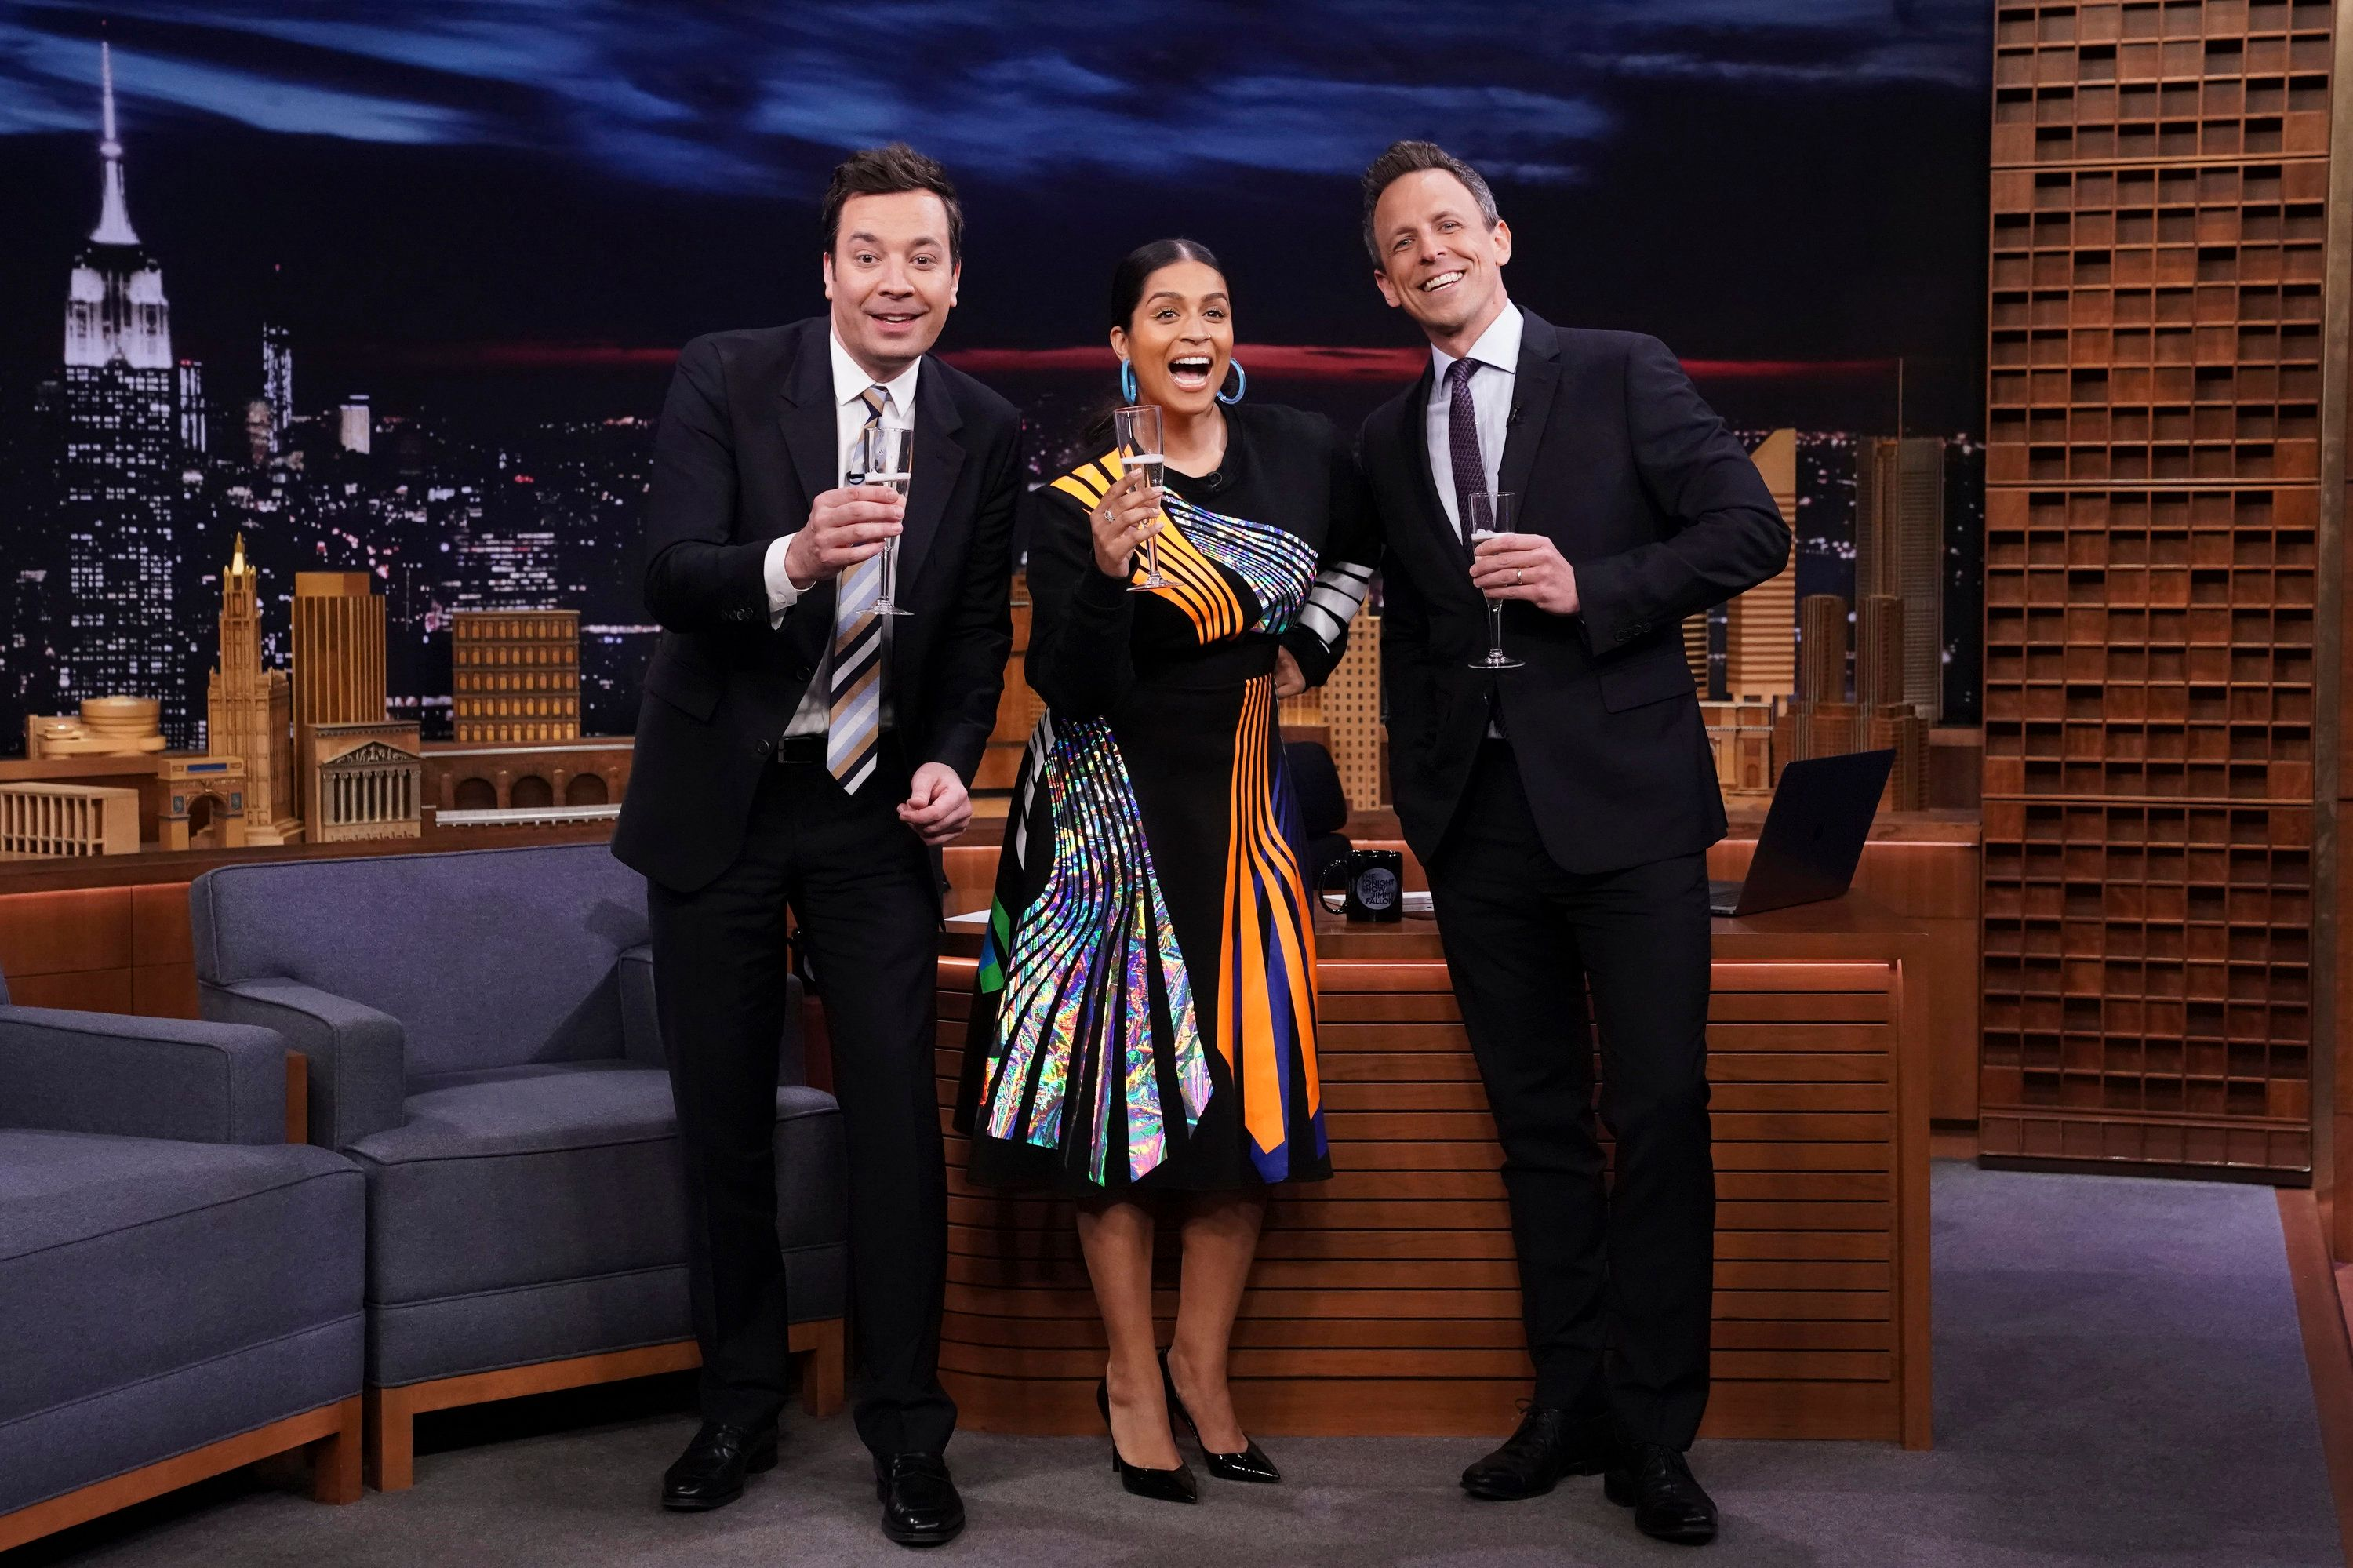 THE TONIGHT SHOW STARRING JIMMY FALLON -- Episode 1030 -- Pictured: (l-r) Host Jimmy Fallon, comedian Lilly Singh, and 'Late Night' host Seth Meyers during a special announcement on March 14, 2019 -- (Photo by: Andrew Lipovsky/NBC/NBCU Photo Bank via Getty Images)